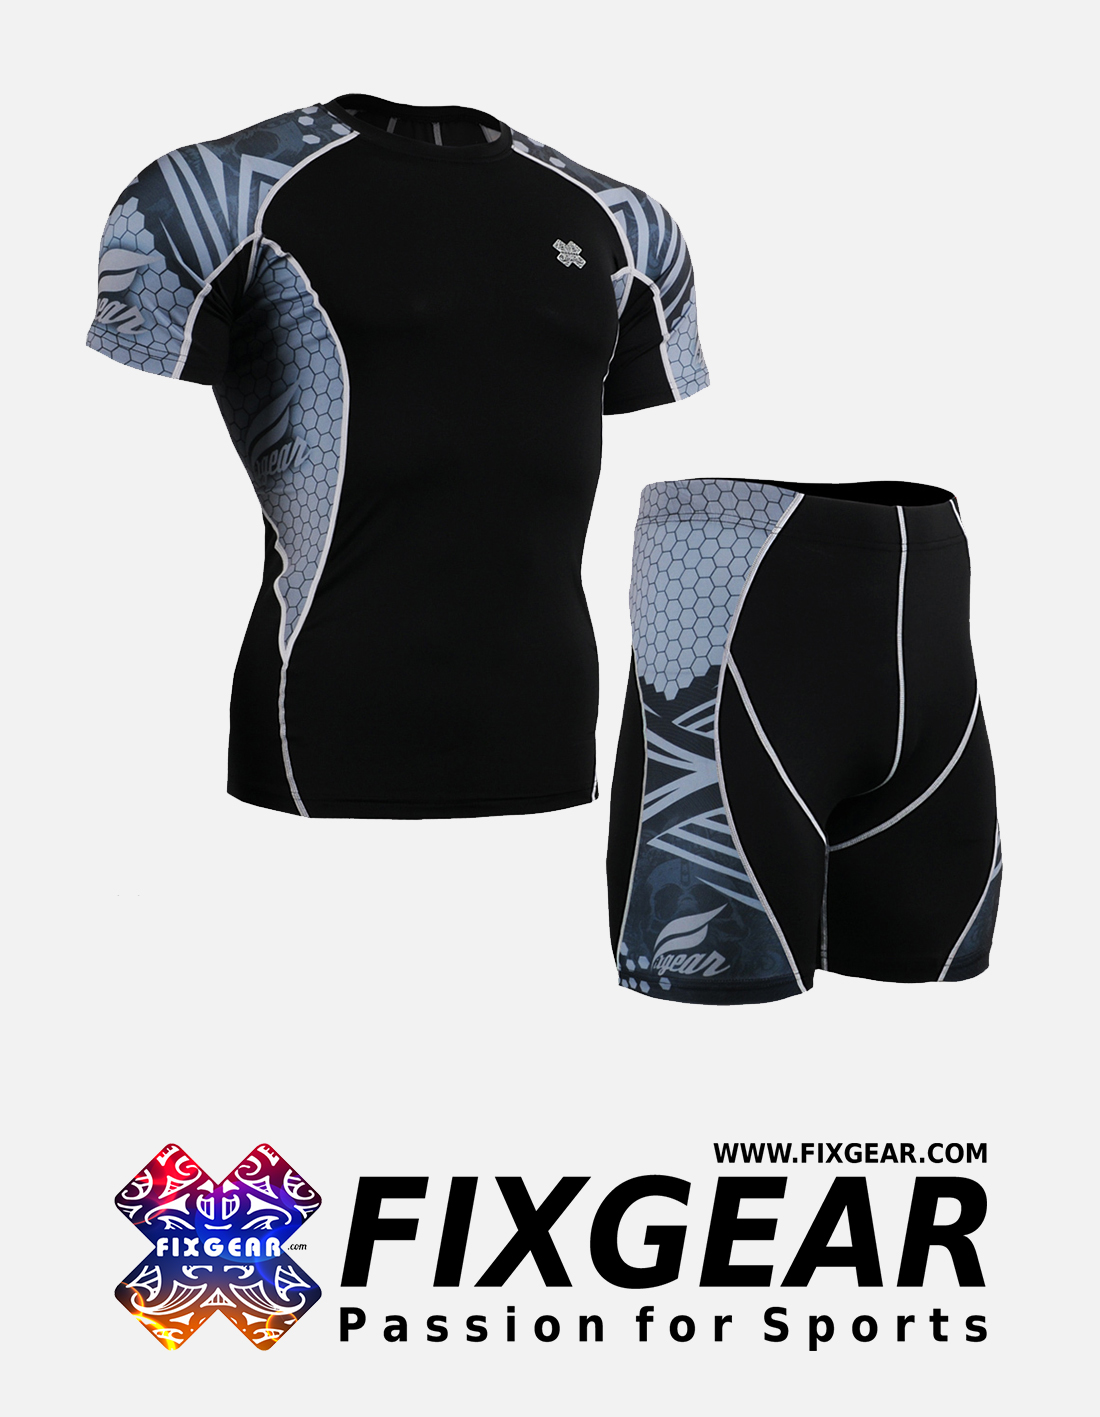 FIXGEAR C2S-P2S-B41 Set Compression Base Layer Shirt & Compression Drawer Shorts